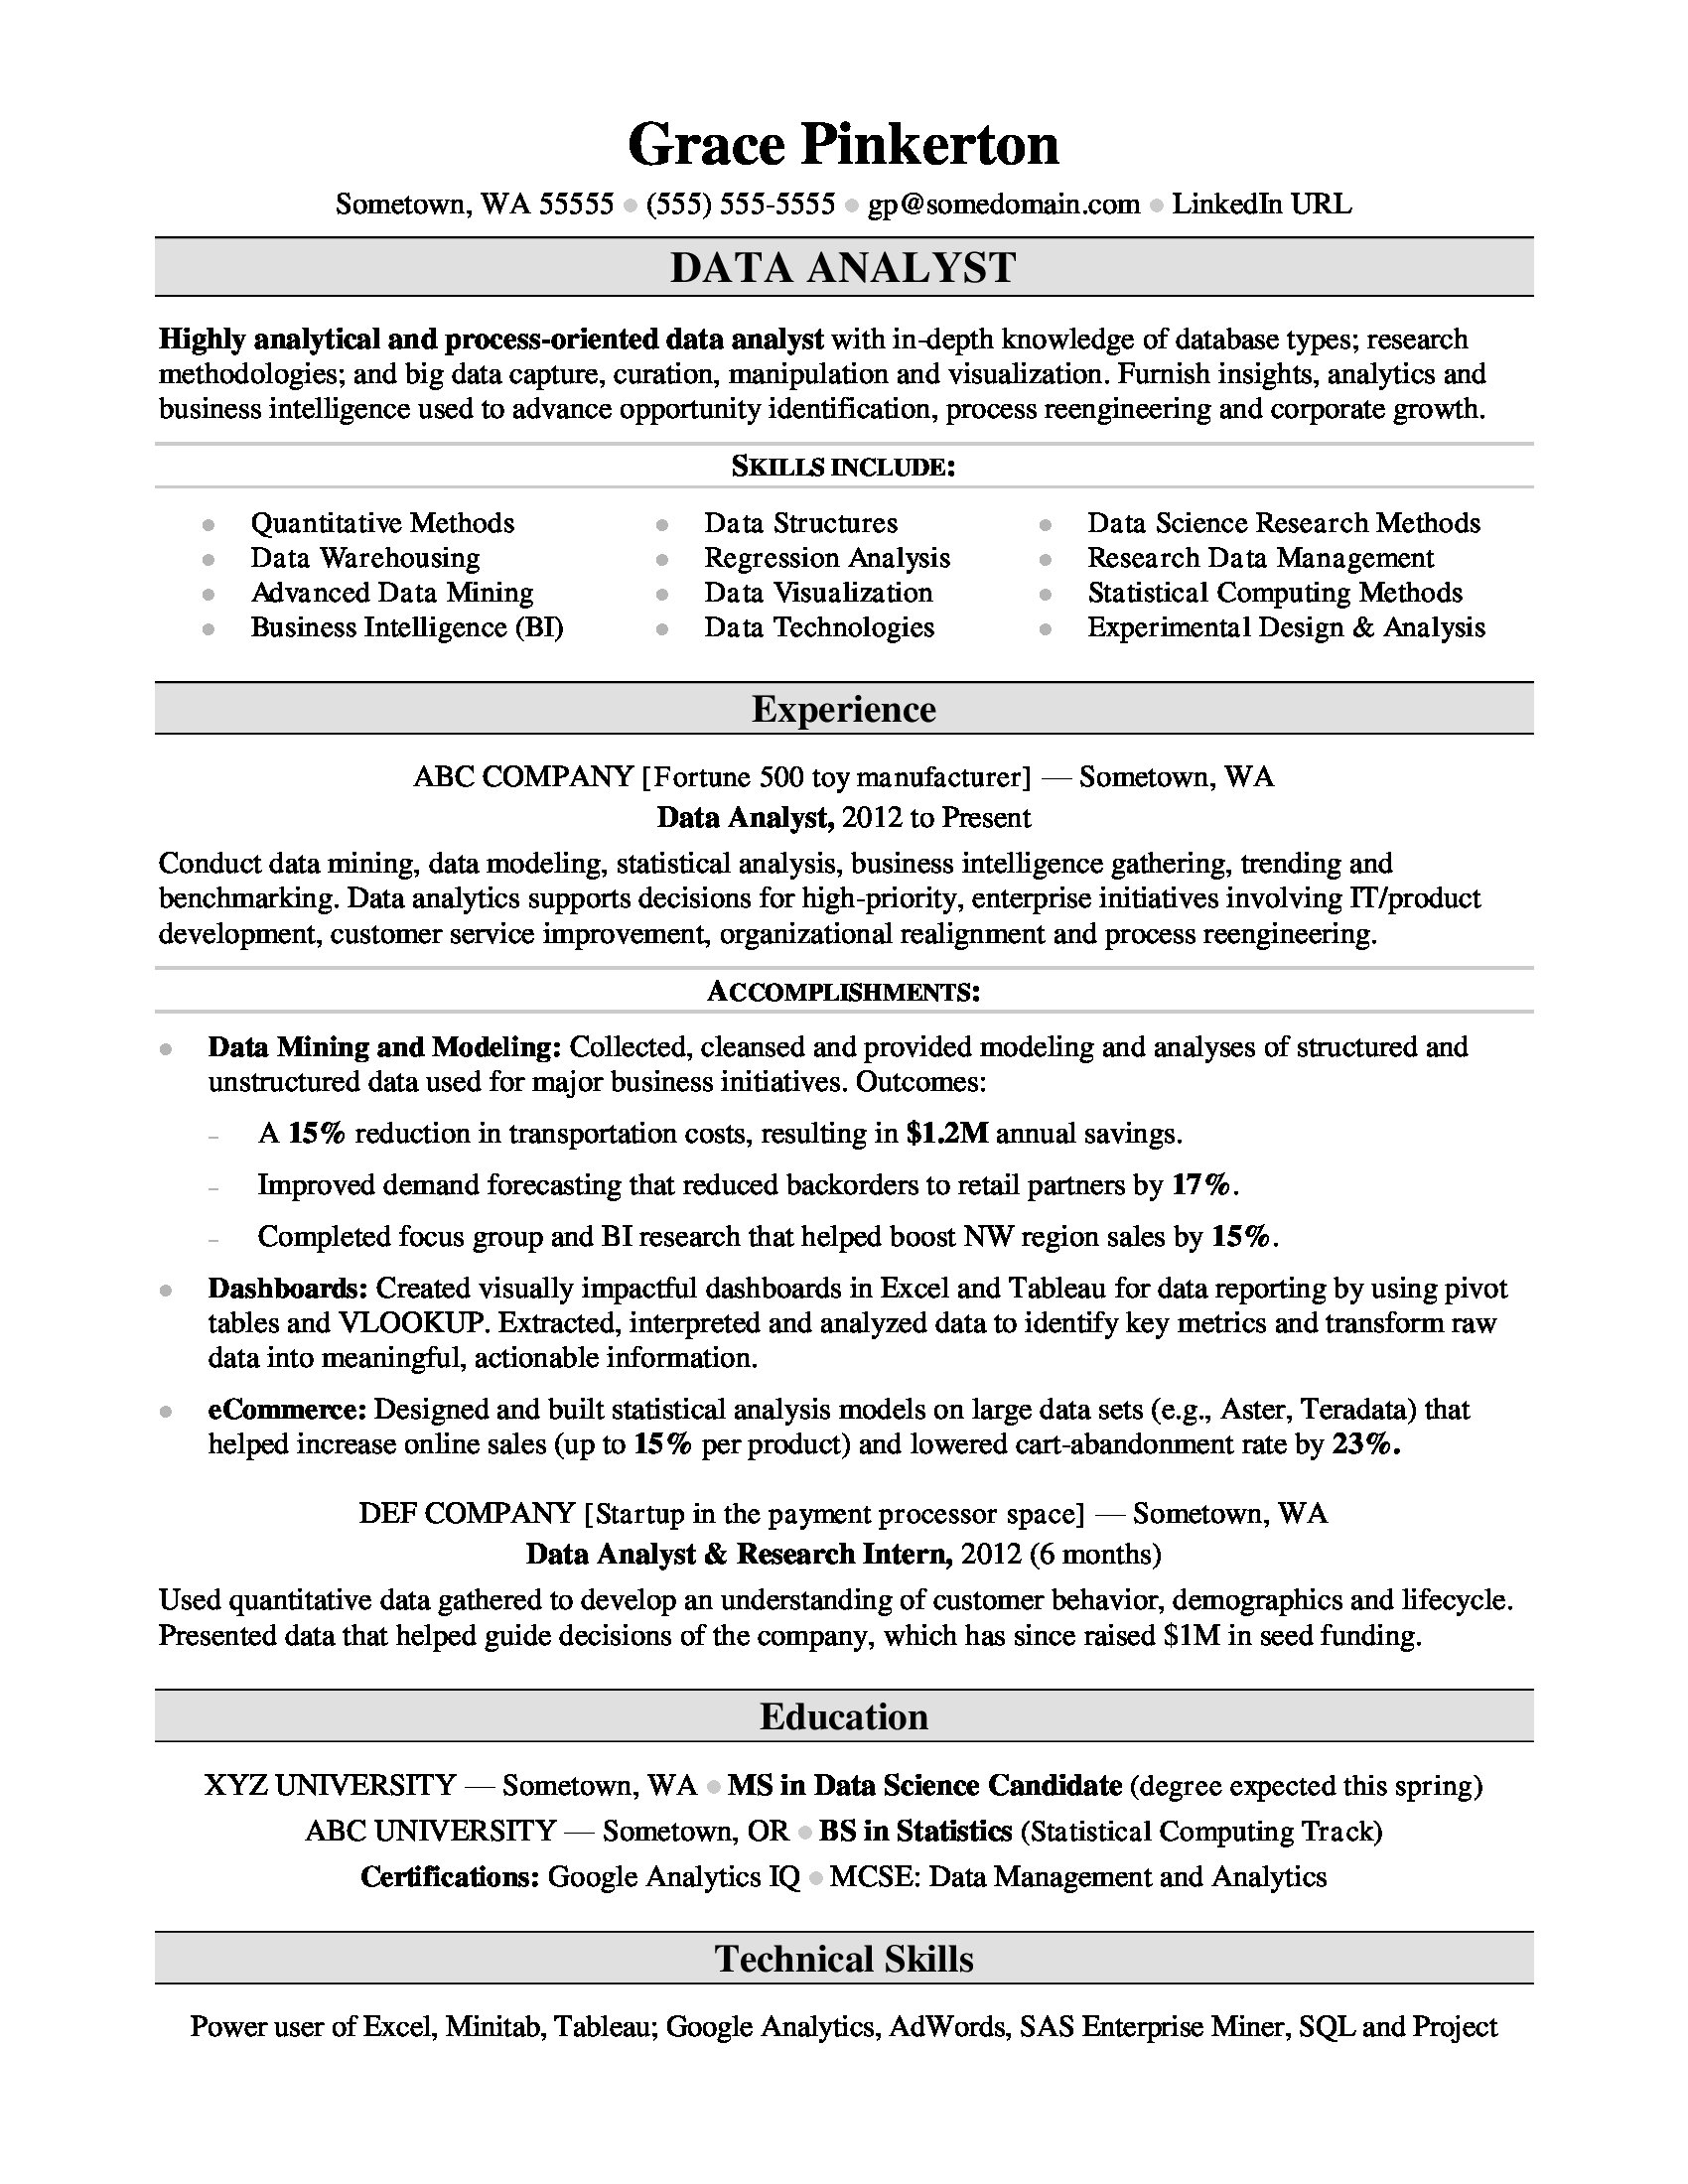 data analyst resume sample monster science review dataanalyst project manager med school Resume Data Science Resume Review